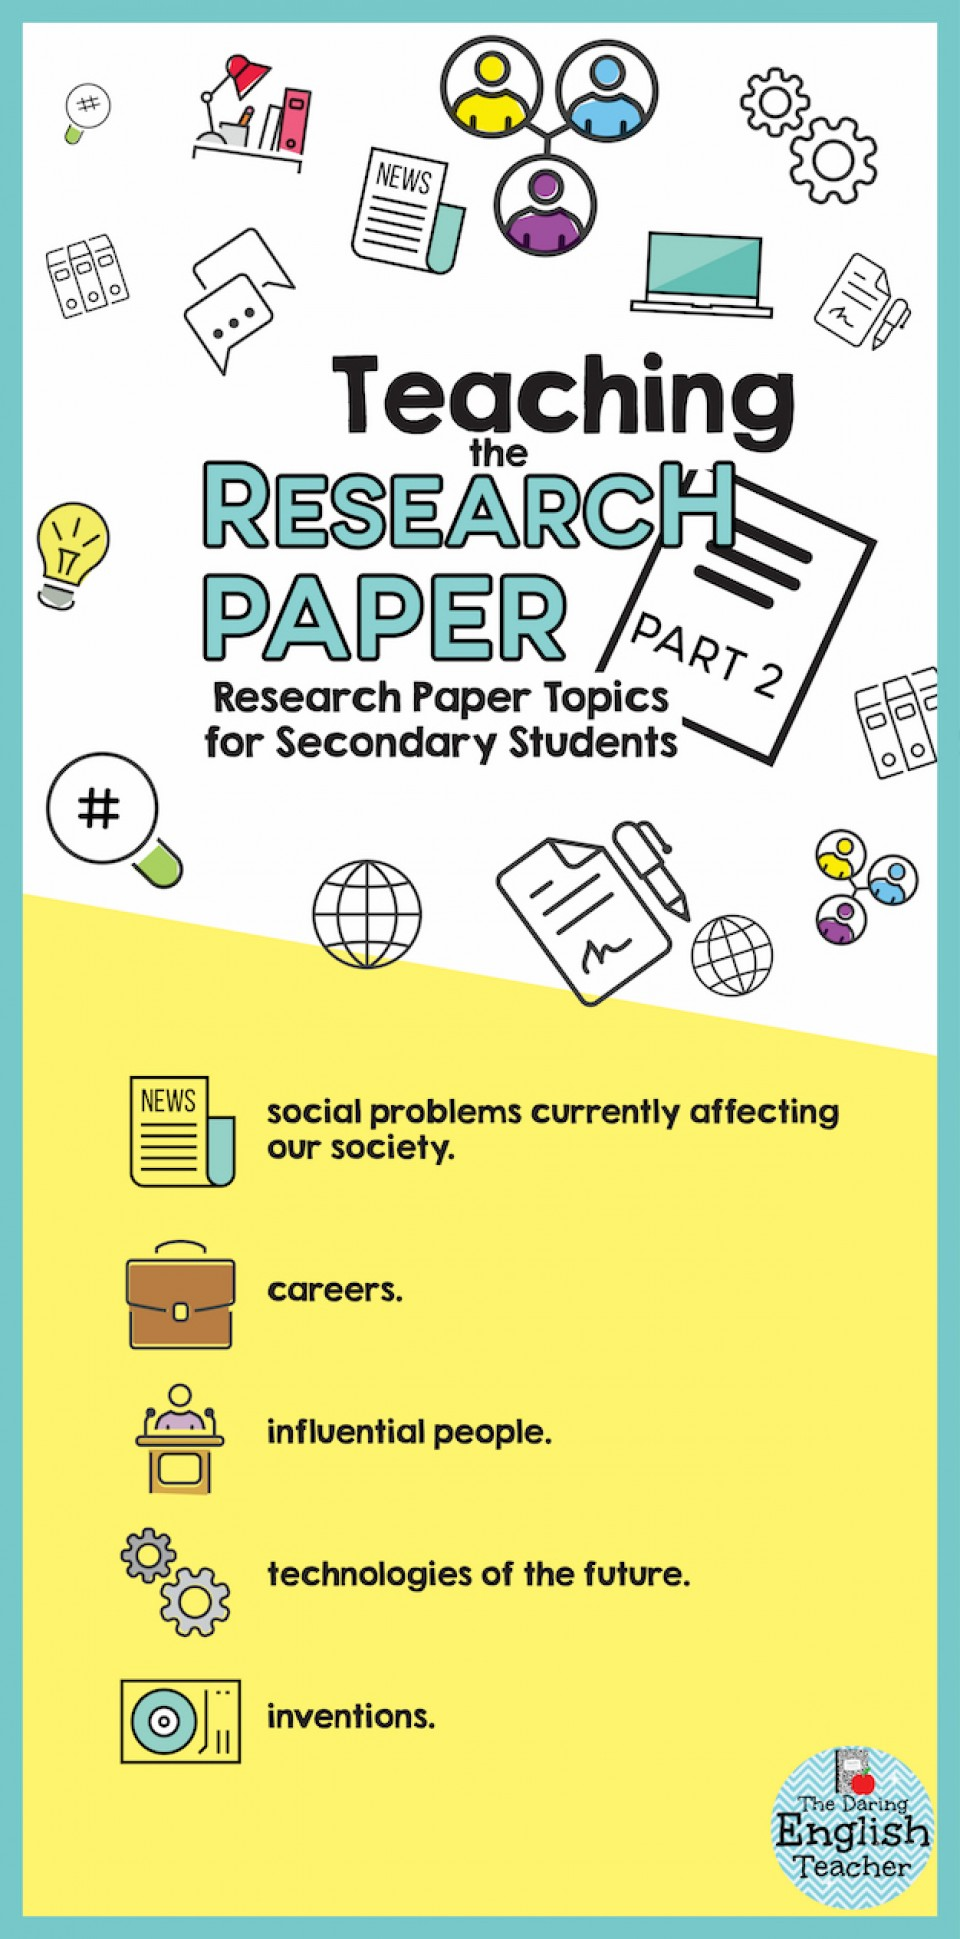 020 Infographic2bp22b2 Research Paper Topic For Unusual A Topics On Education Frankenstein Special 960